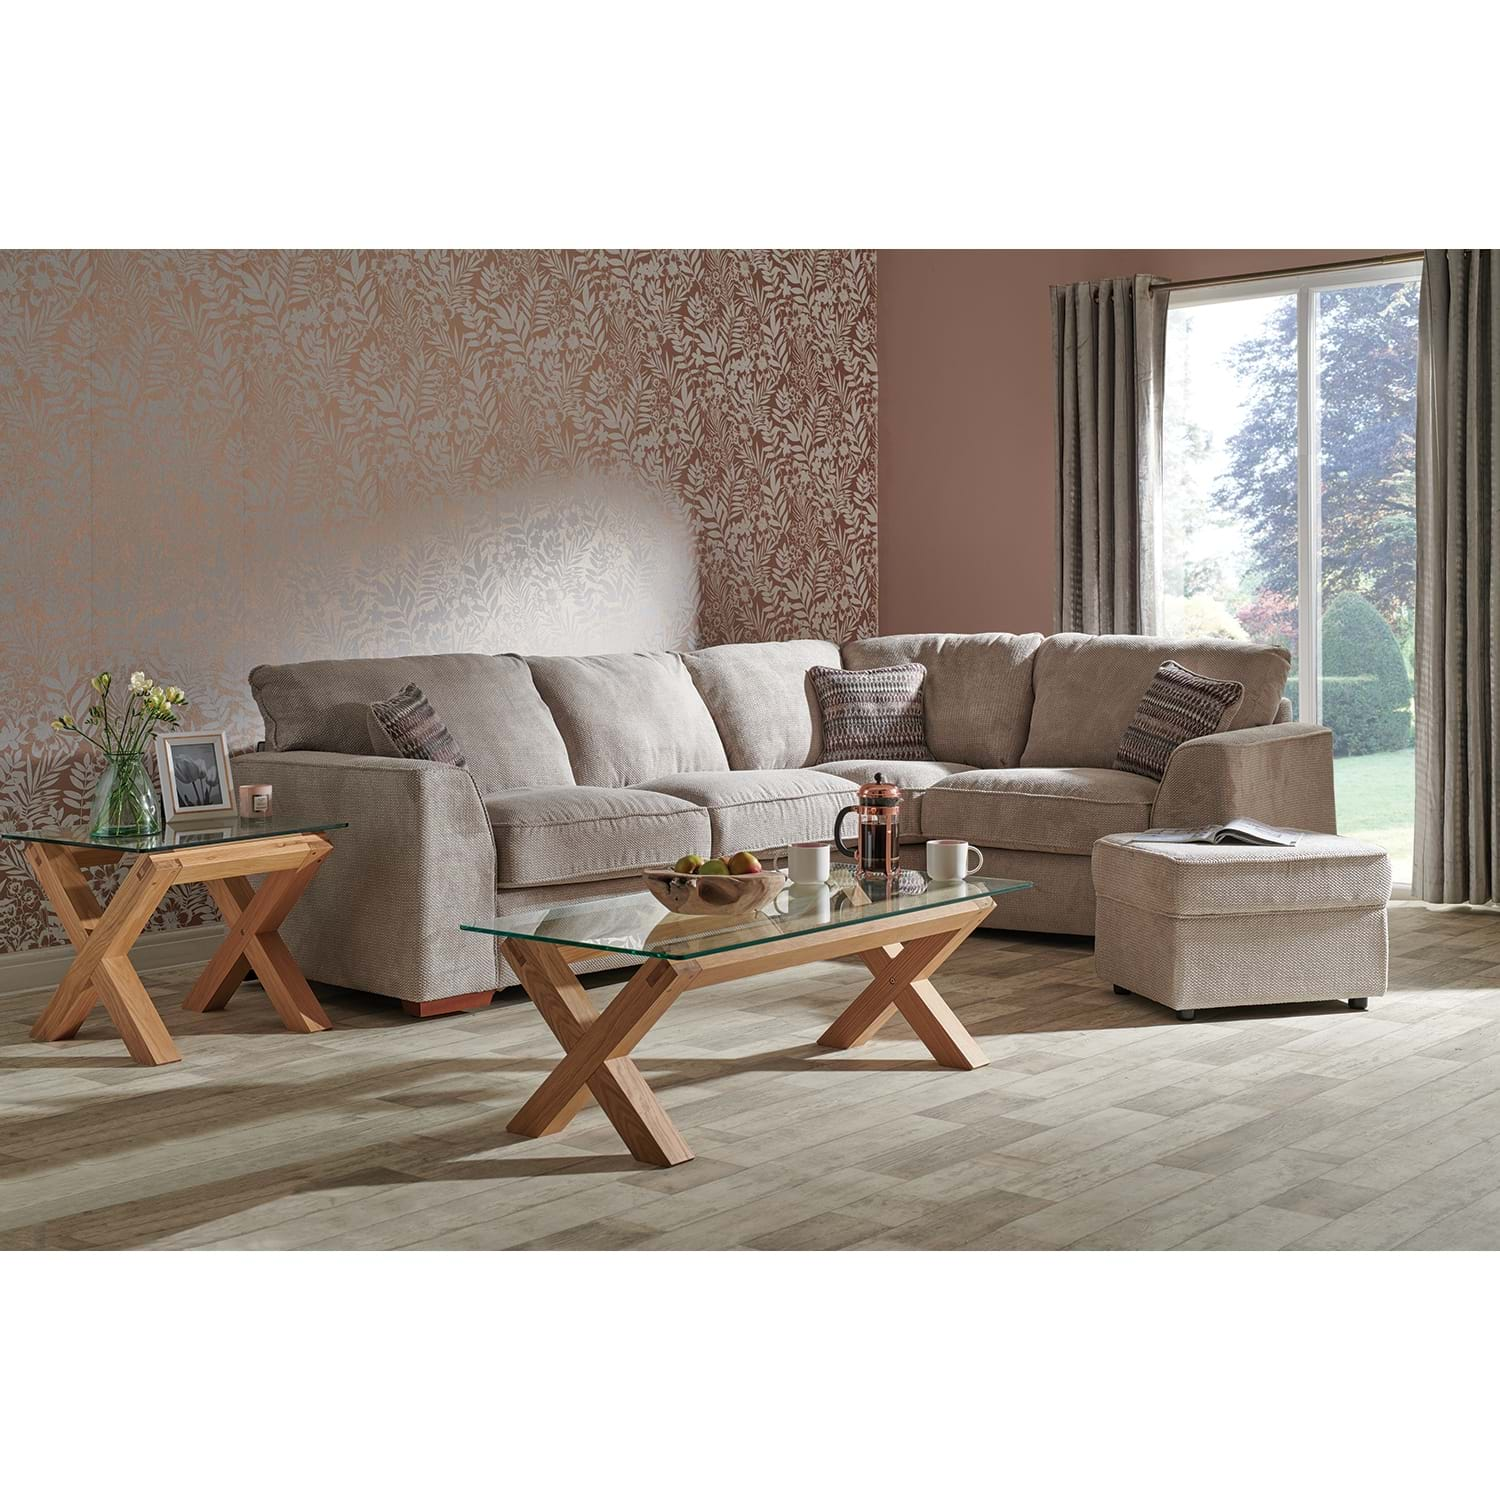 Image of Casa Alpha Corner Fabric Sofa